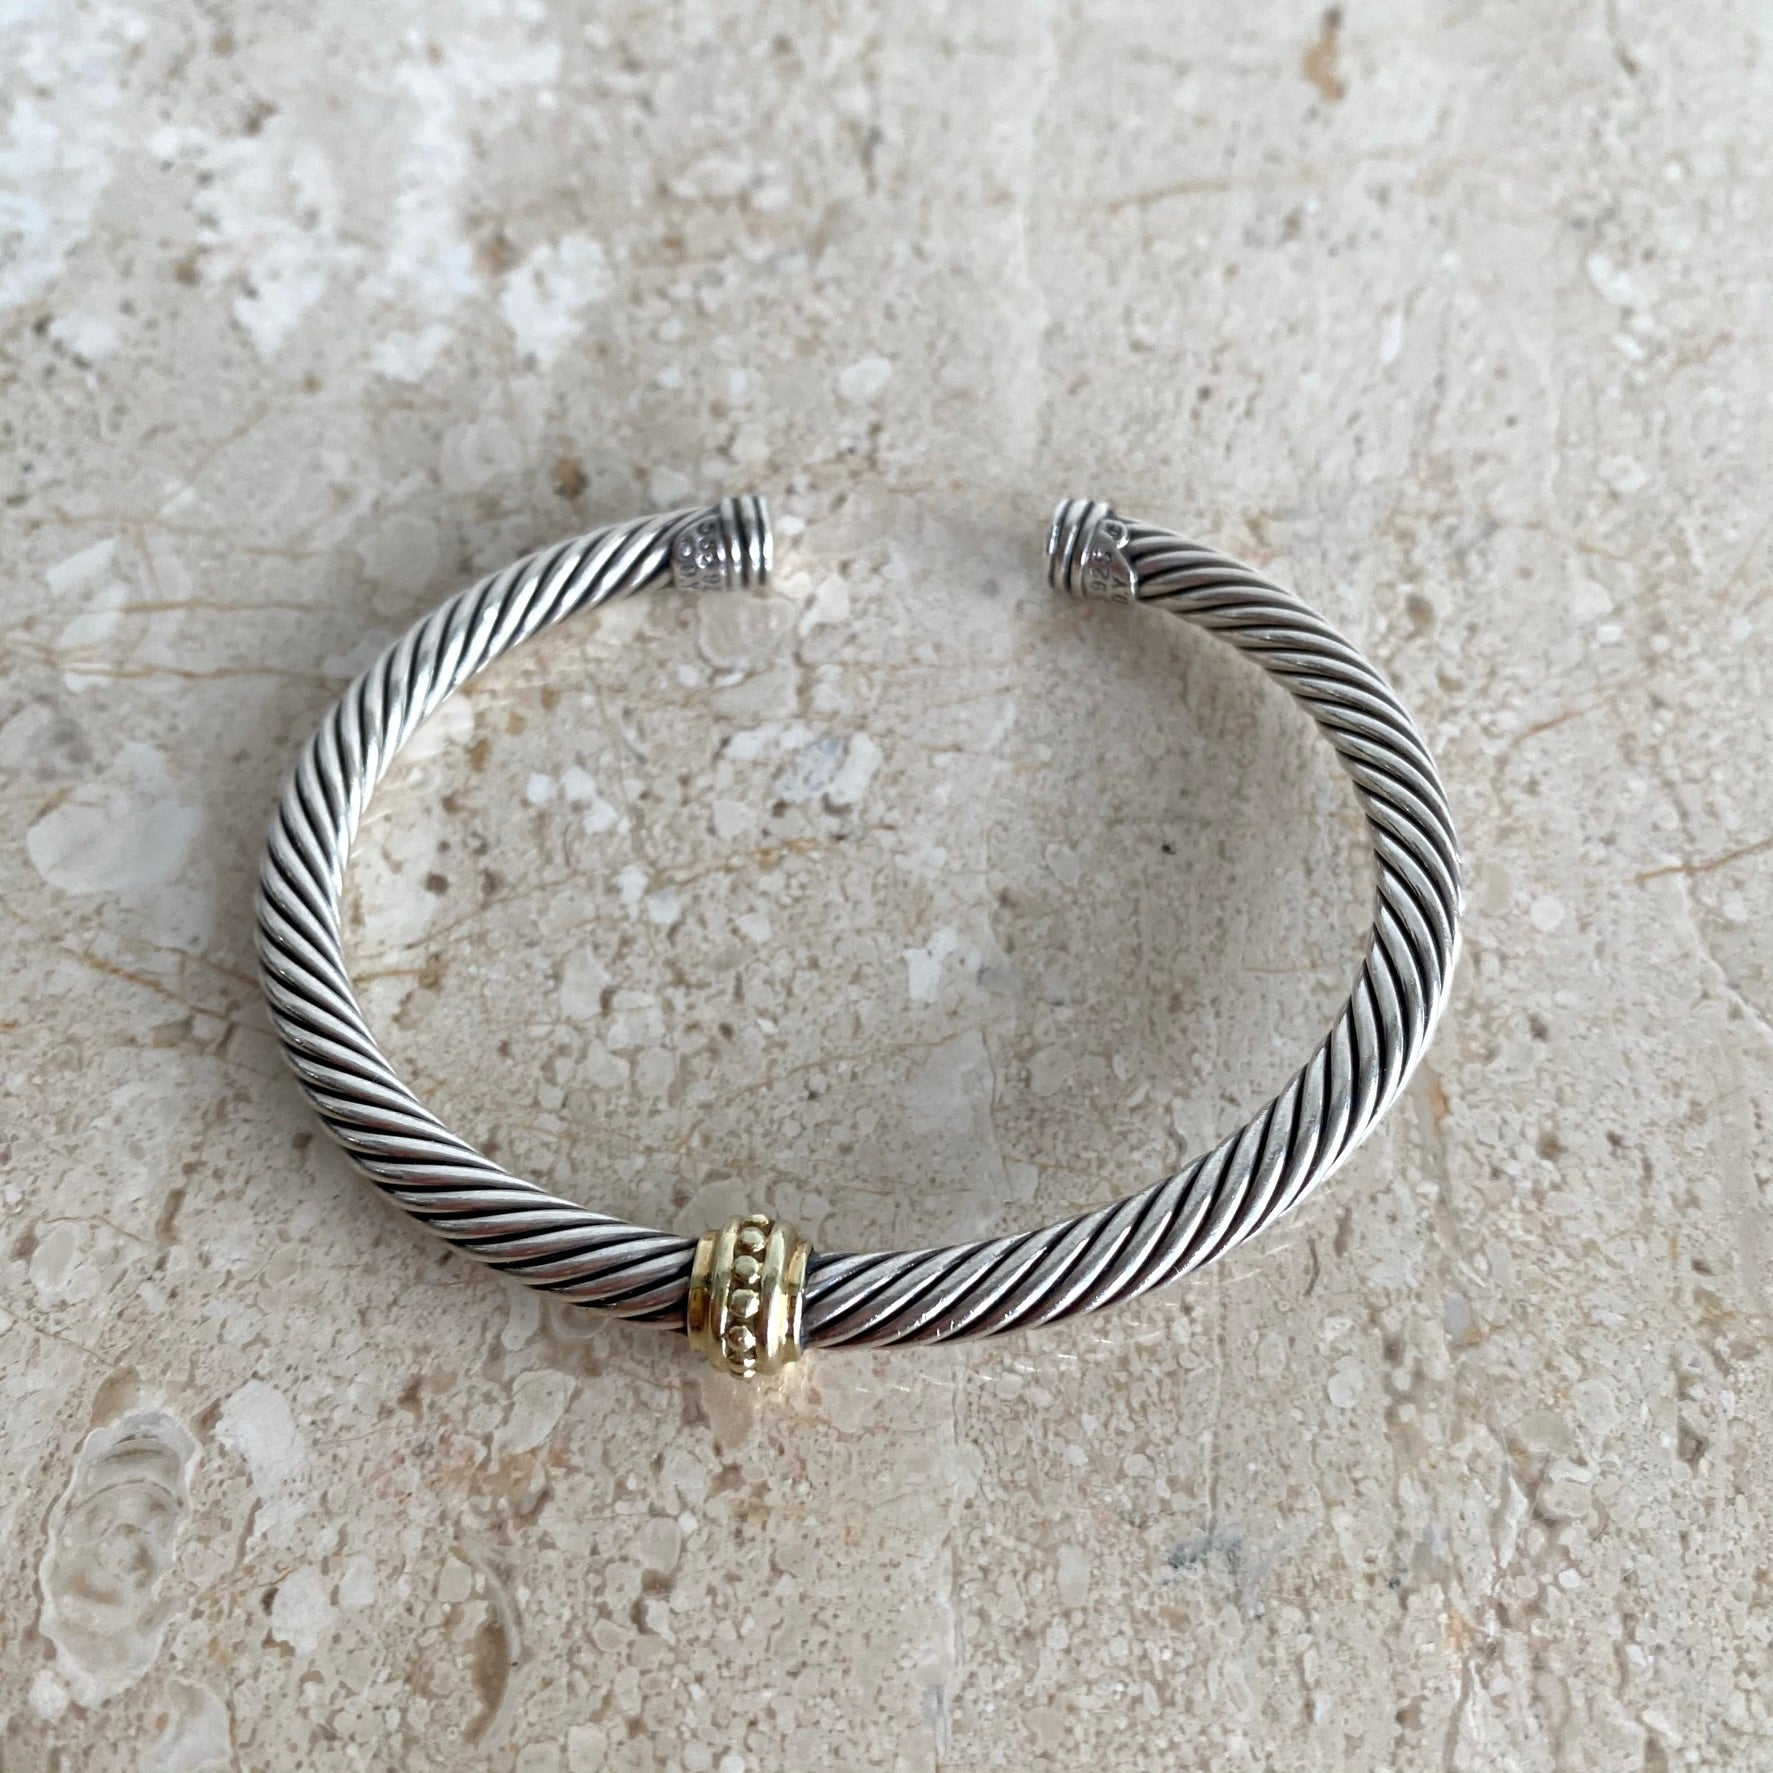 Authentic DAVID YURMAN Sterling Silver and Gold Cable Bracelet